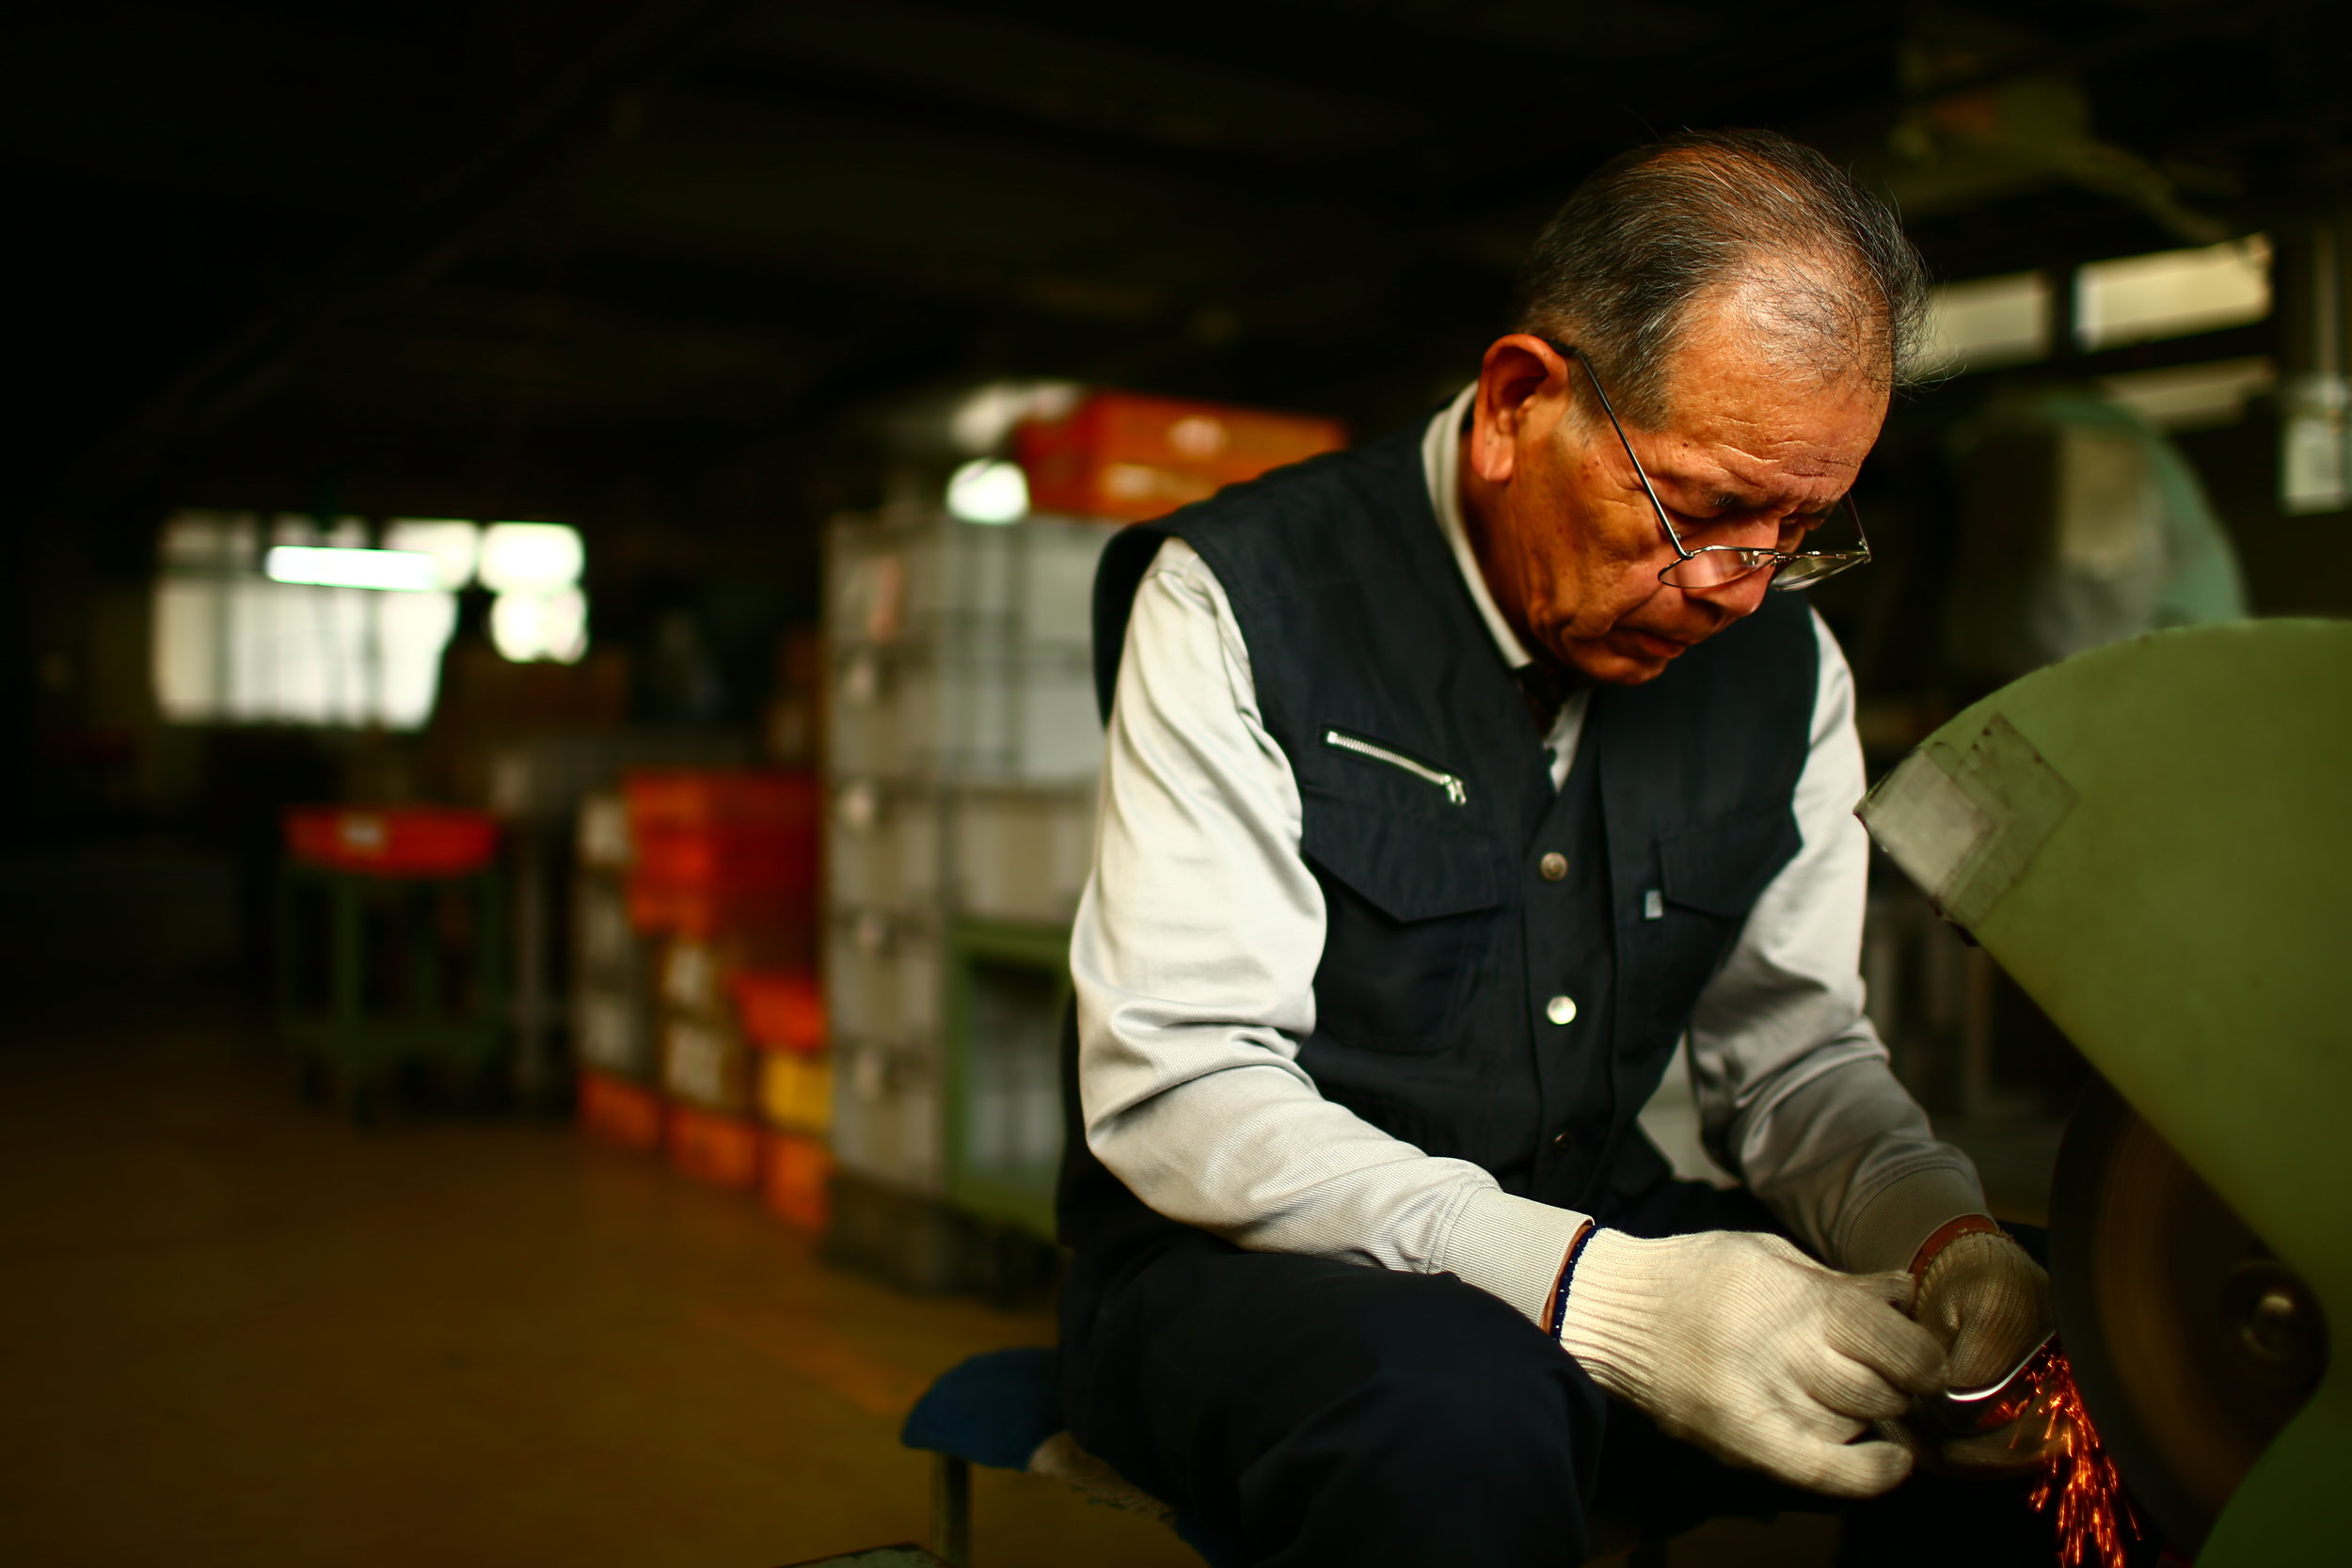 Miura have been making clubs by hand since 1957